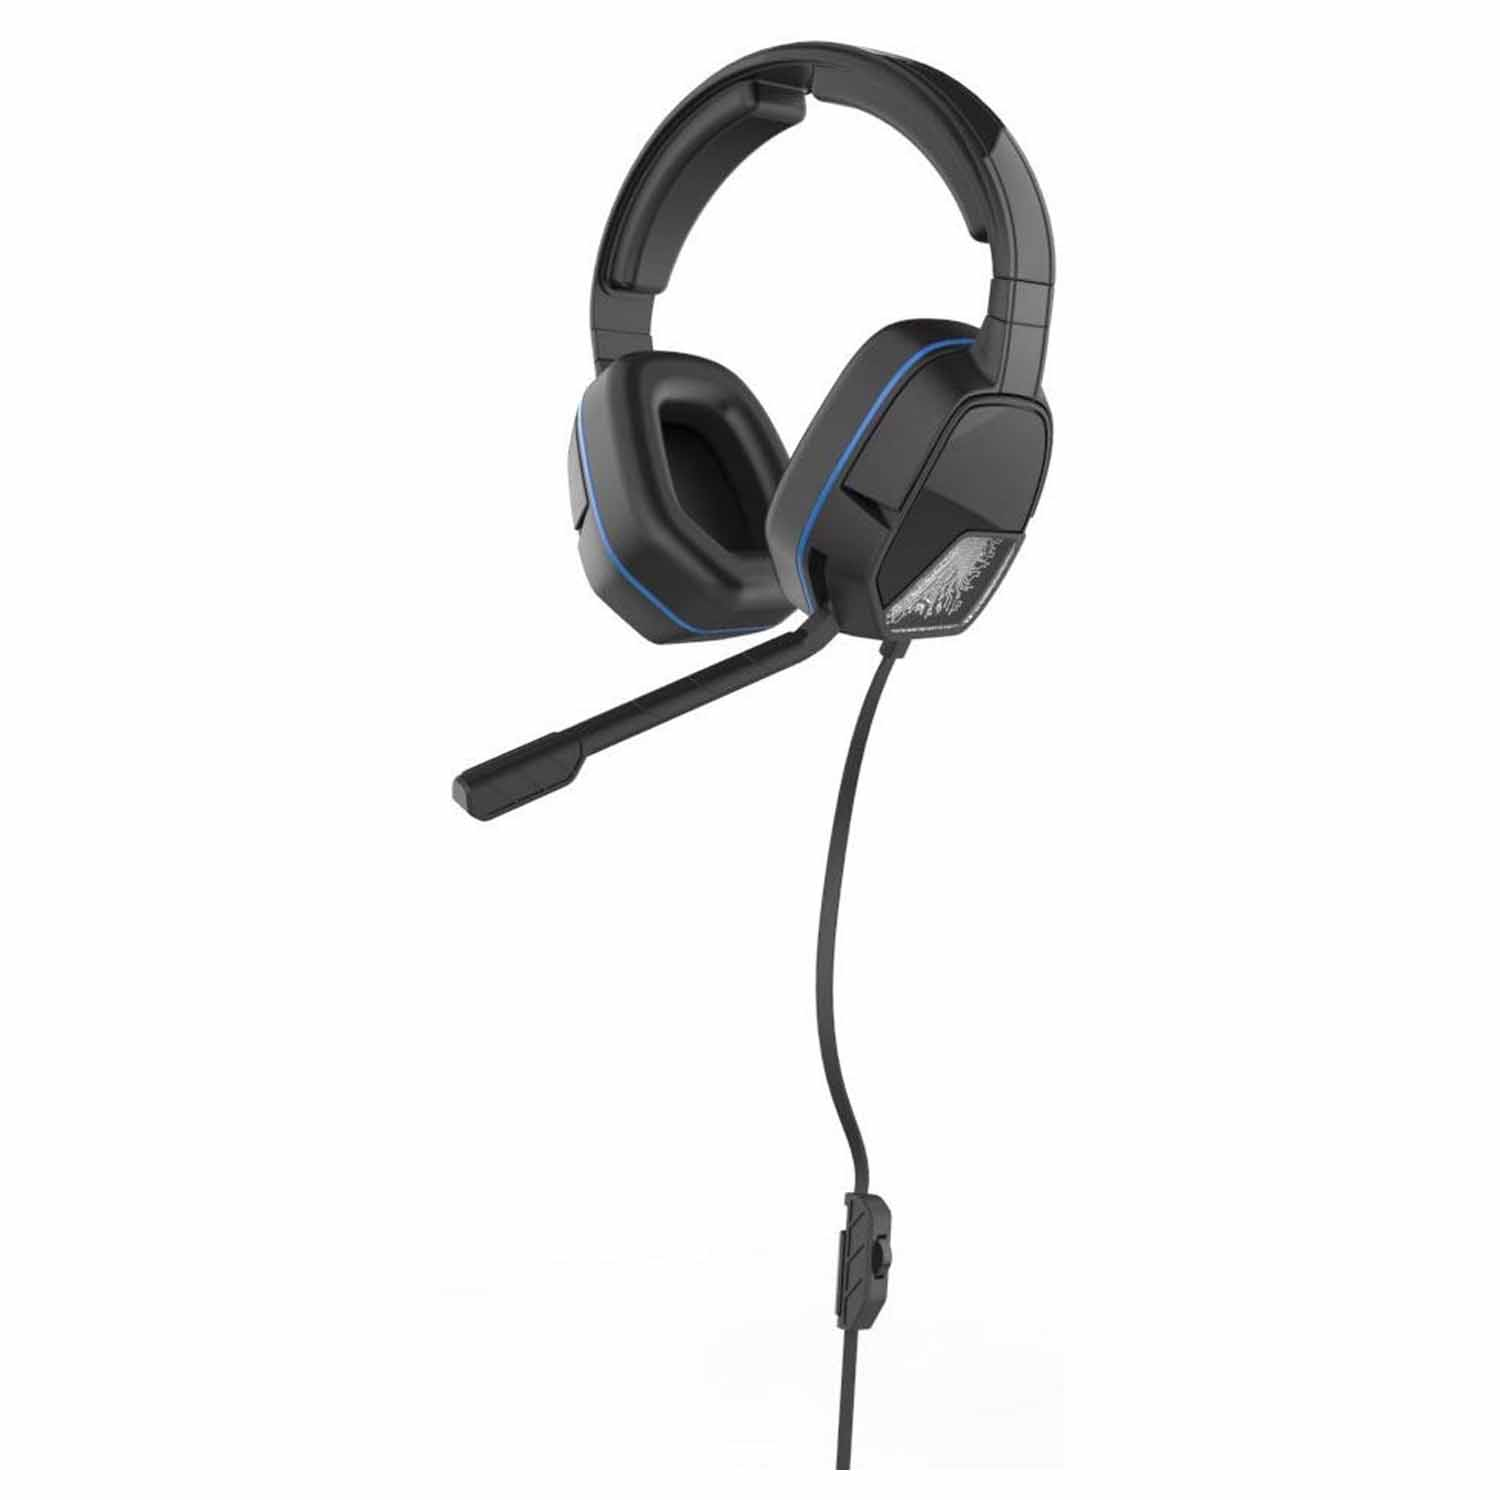 6706aa0a386 PDP Sony Afterglow LVL 3 Stereo Gaming Headset 051-032, Black| Blink ...